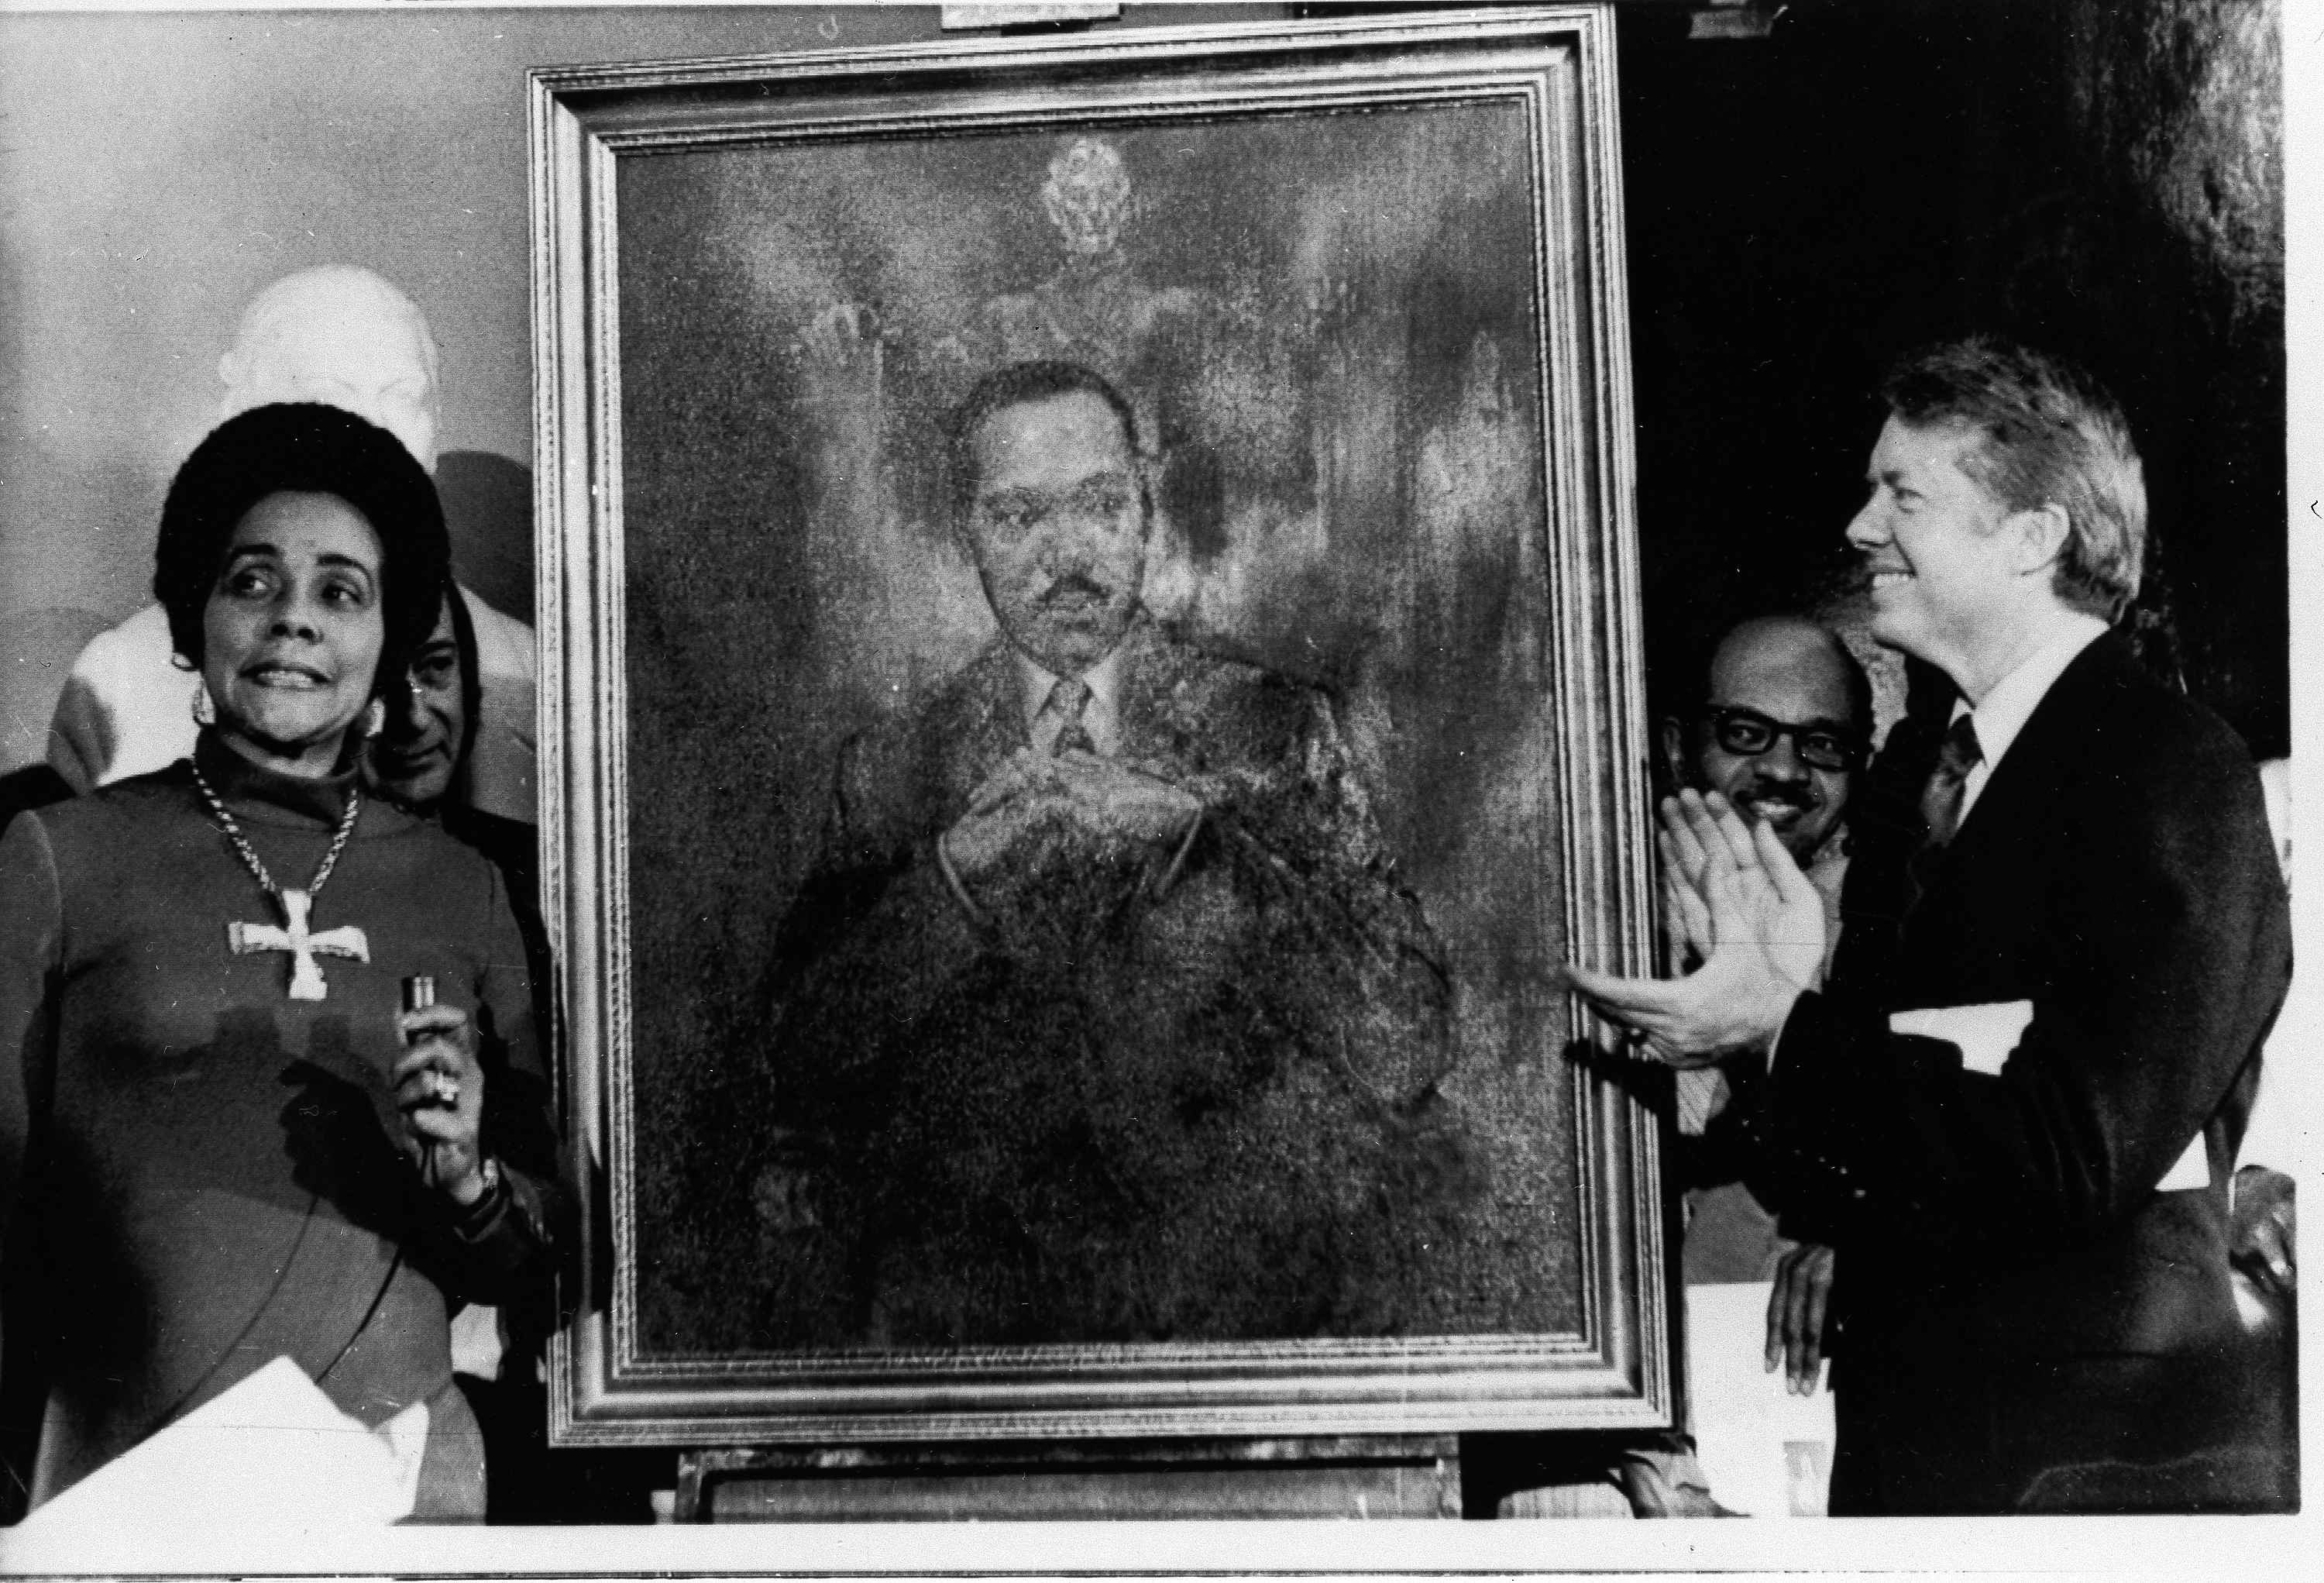 Coretta Scott King, widow of slain civil rights leader Dr. Martin Luther King, Jr., speaks at an unveiling of a portrait of Dr. King by artist George Mandus, Feb. 18, 1974, and dedicated by Gov. Jimmy Carter.